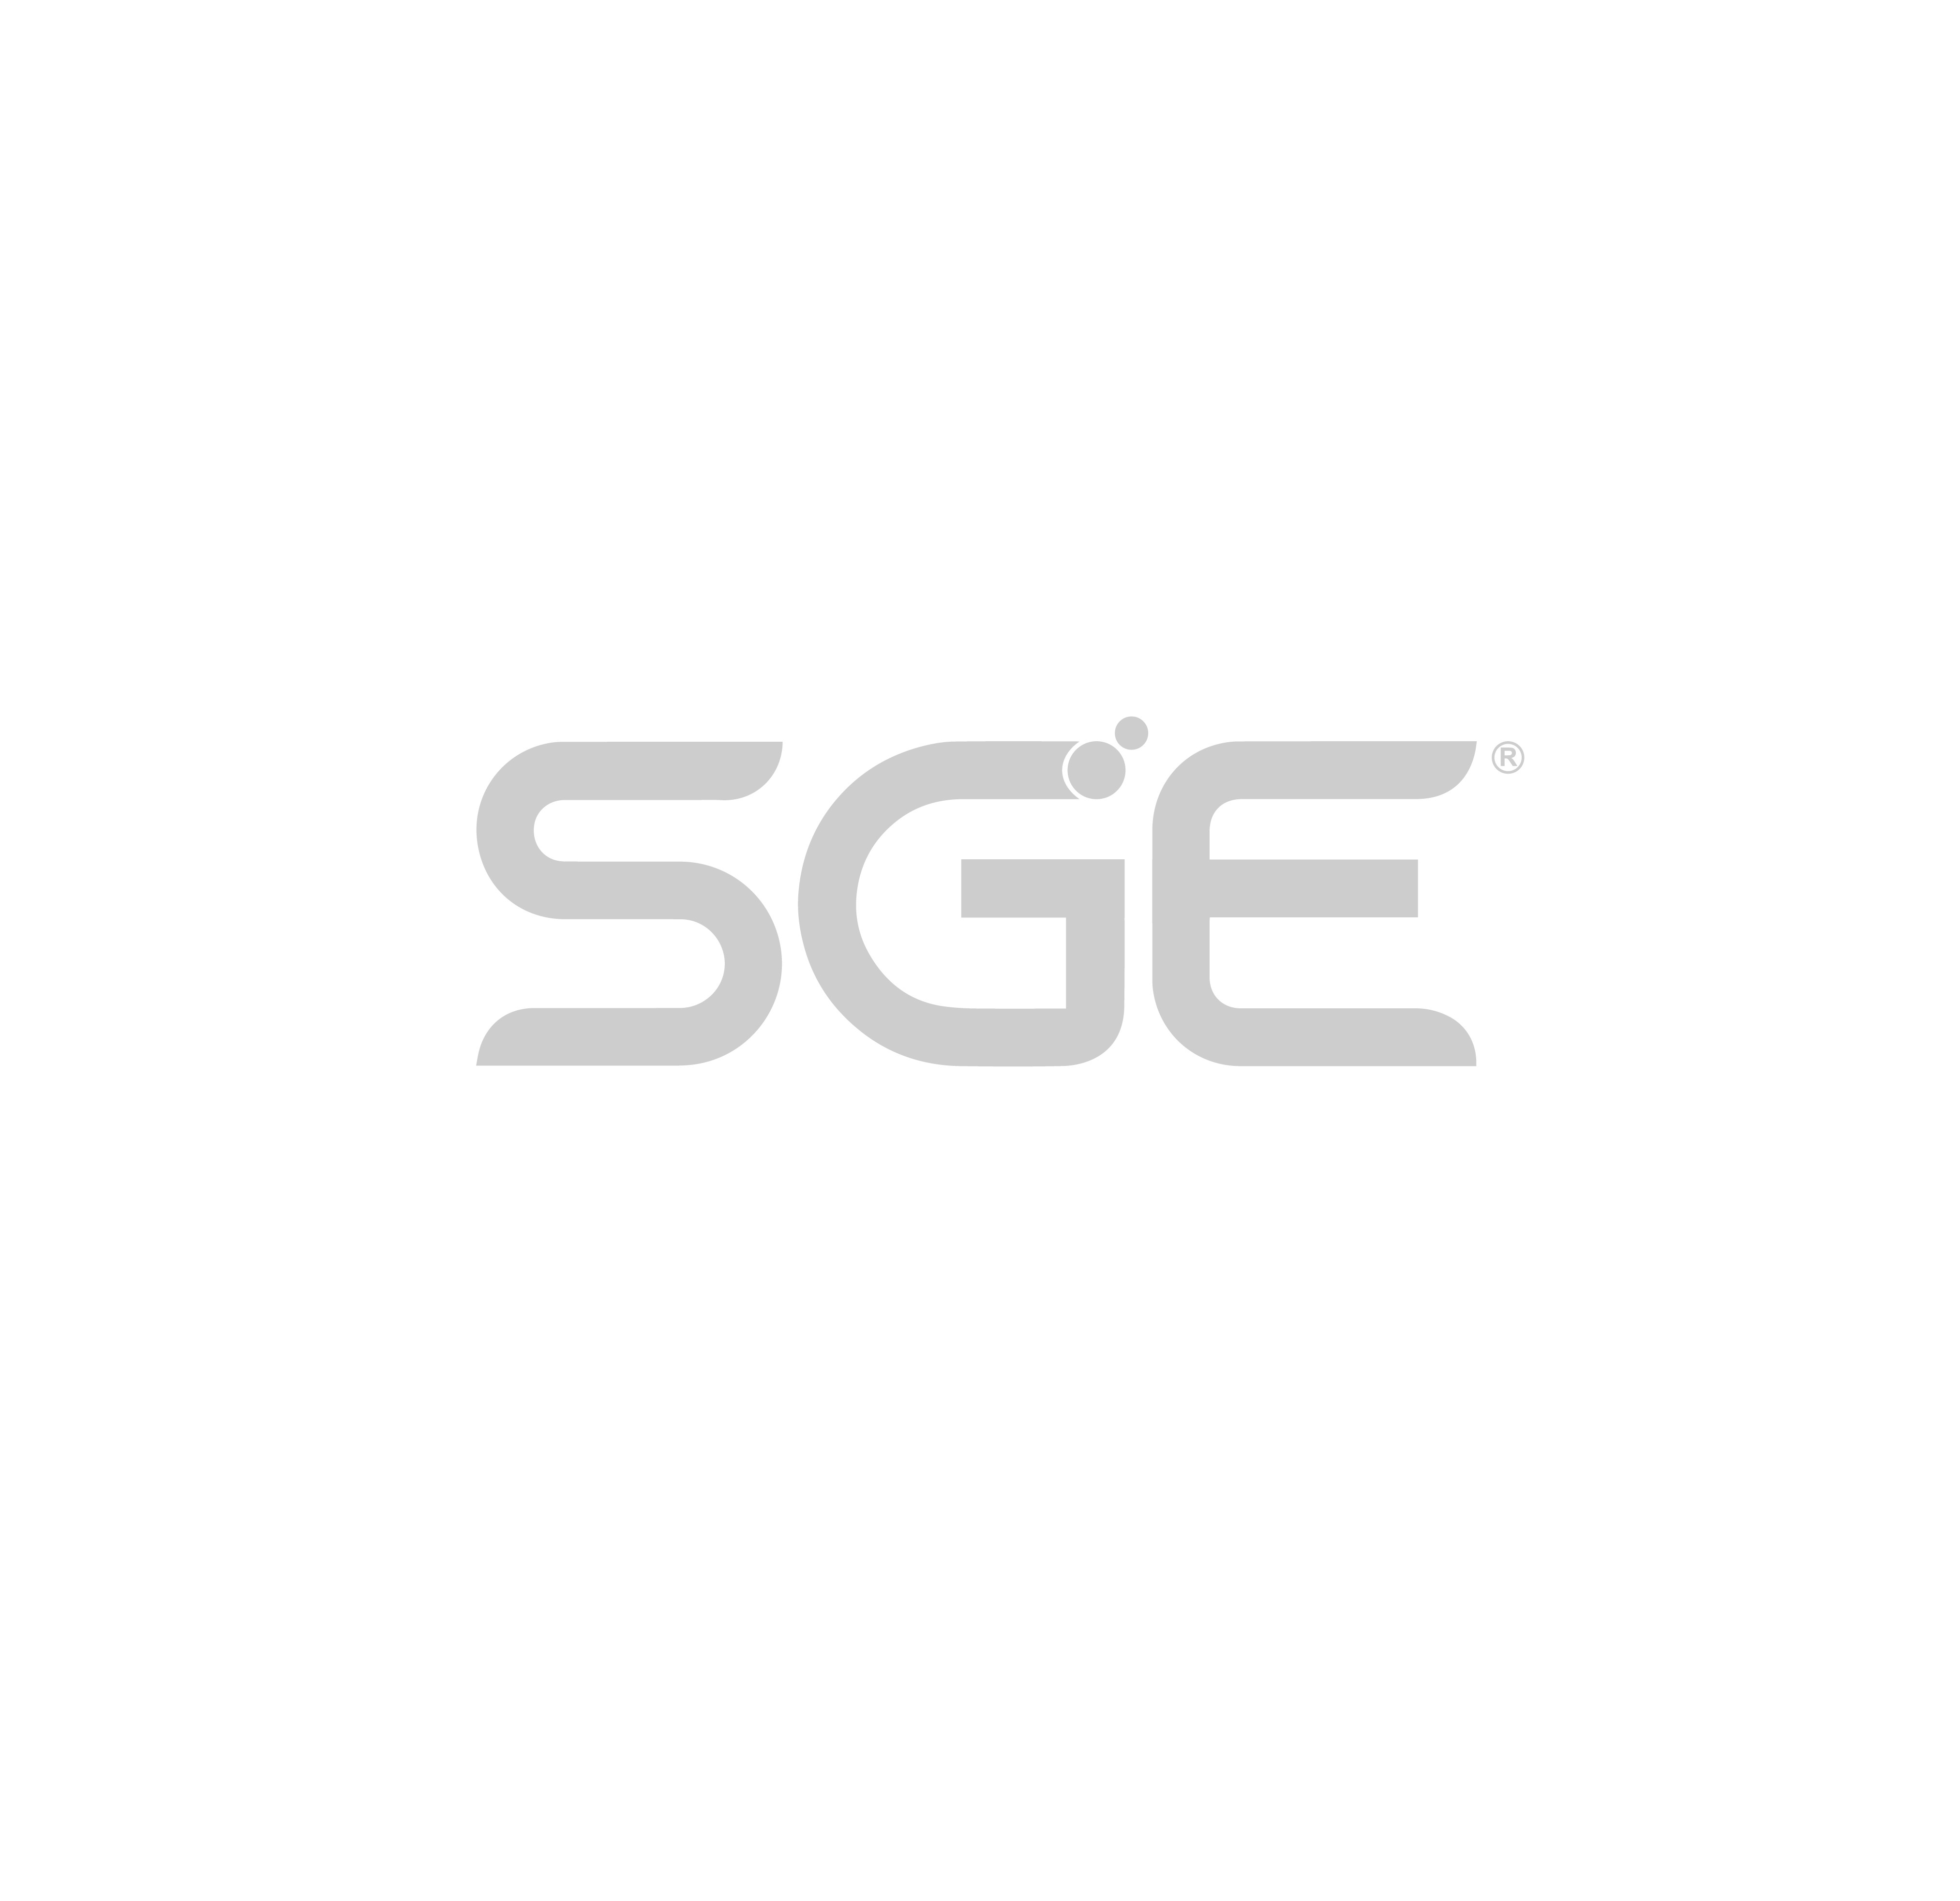 Led Cob 3W Blanco Calido 127Vca 30Ma. 270Lm-300Lm 2800-3200K 26.5Mm